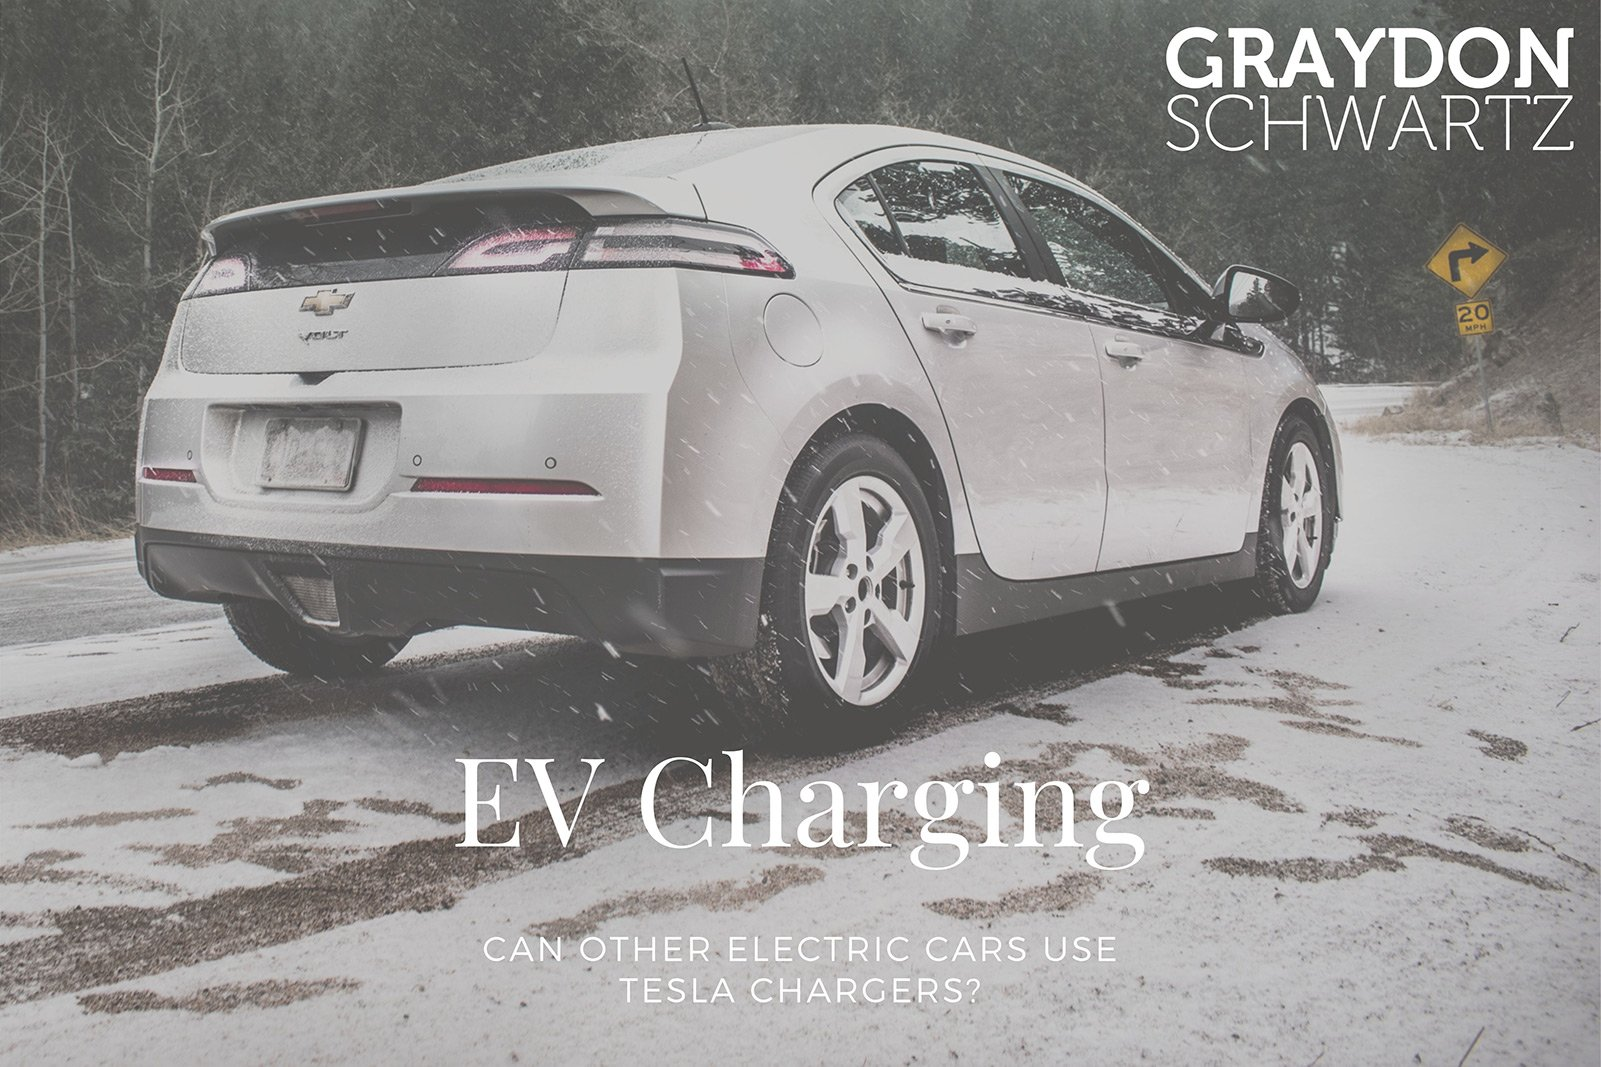 Can Other Electric Cars Use Tesla Chargers?